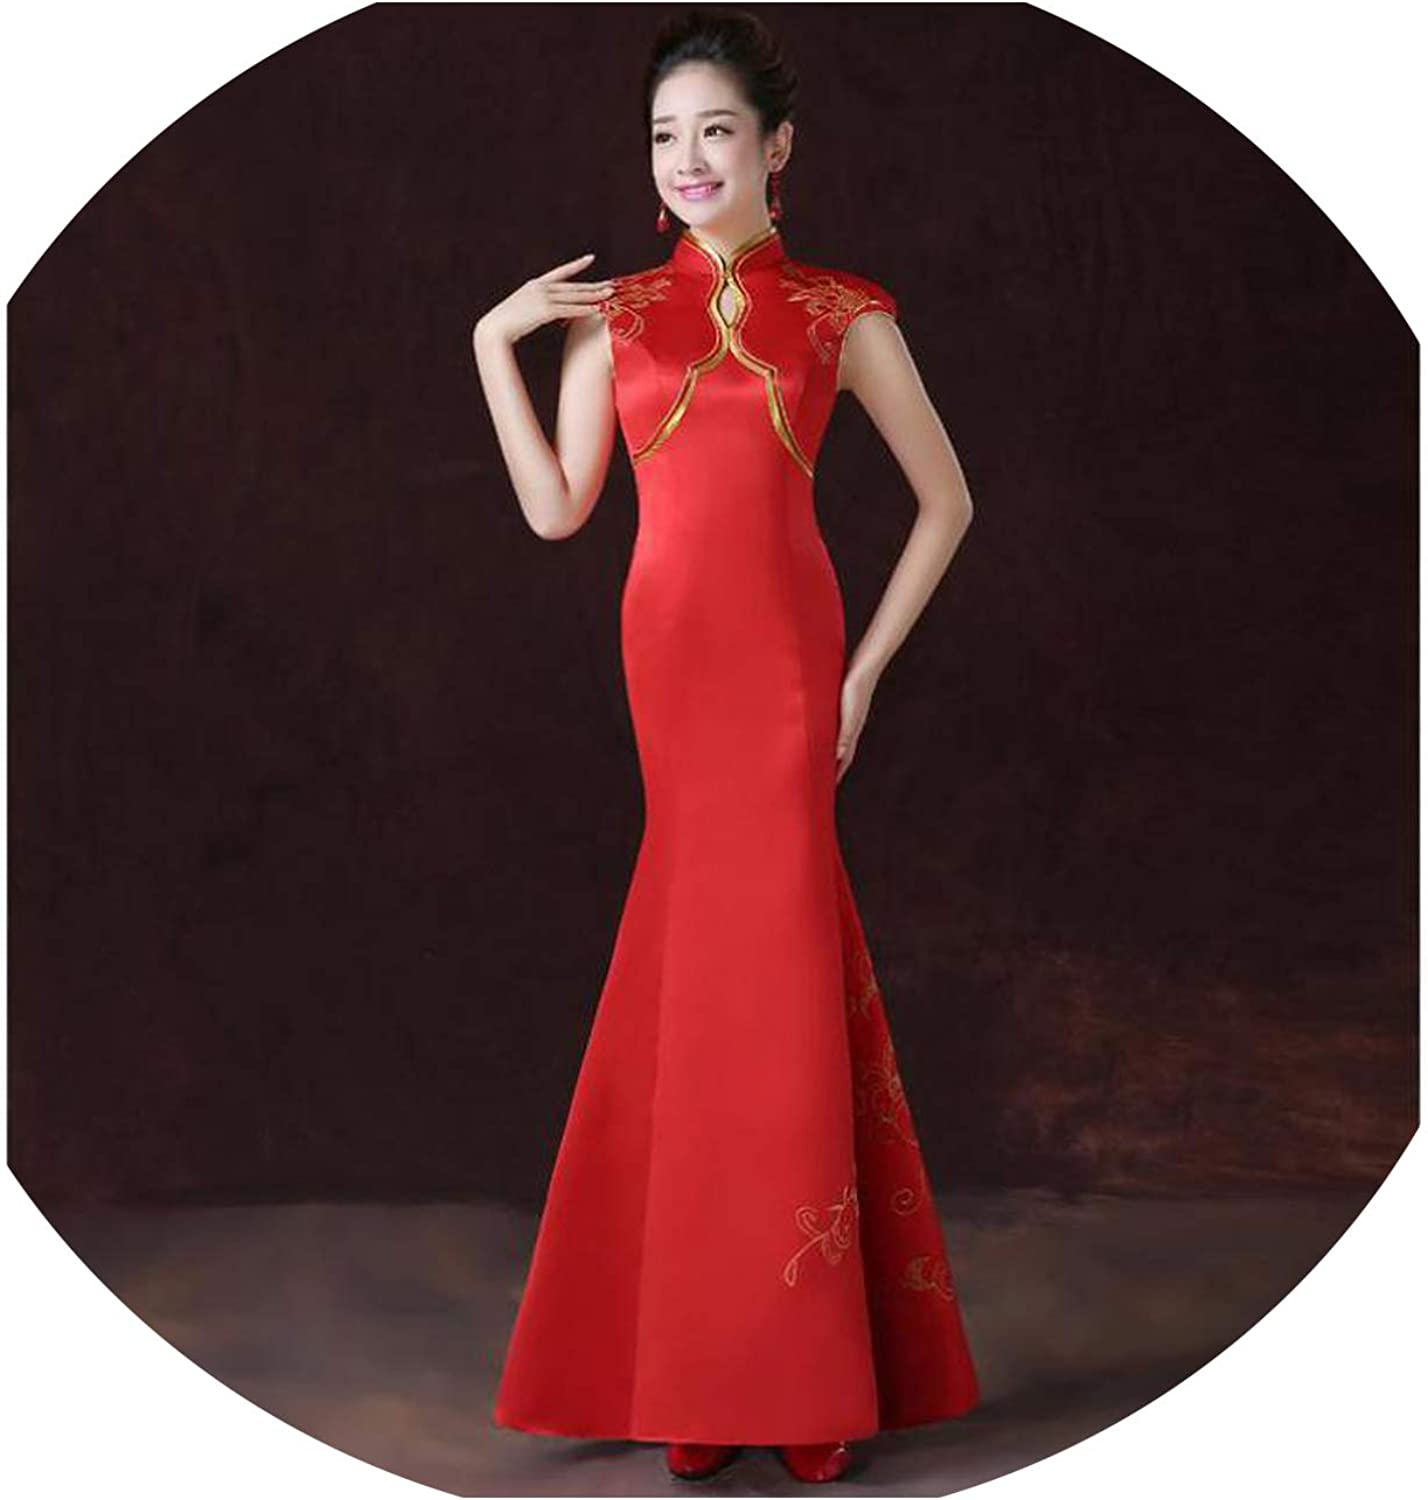 Women Flower Qipao Oriental Improved Cheongsam Bride Printed Satin Wedding Party Dress Vestidos XSXXL